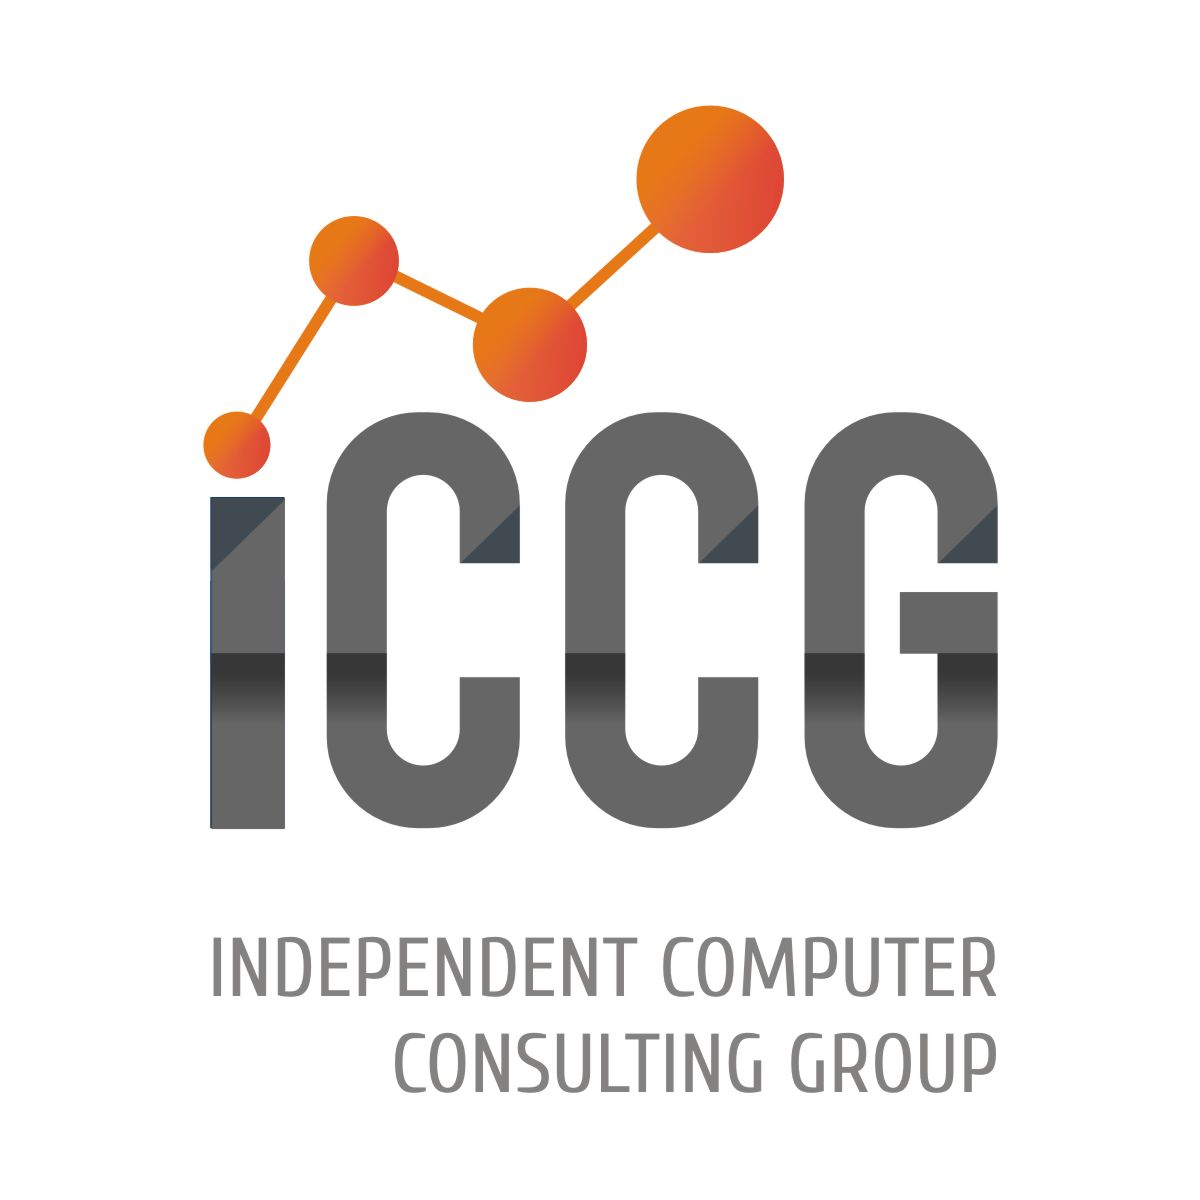 Independent Computer Consulting Group (ICCG) Partners with SPS Commerce to Bolster Delivery and Support for Digital Transformations and Positive Customer Experiences